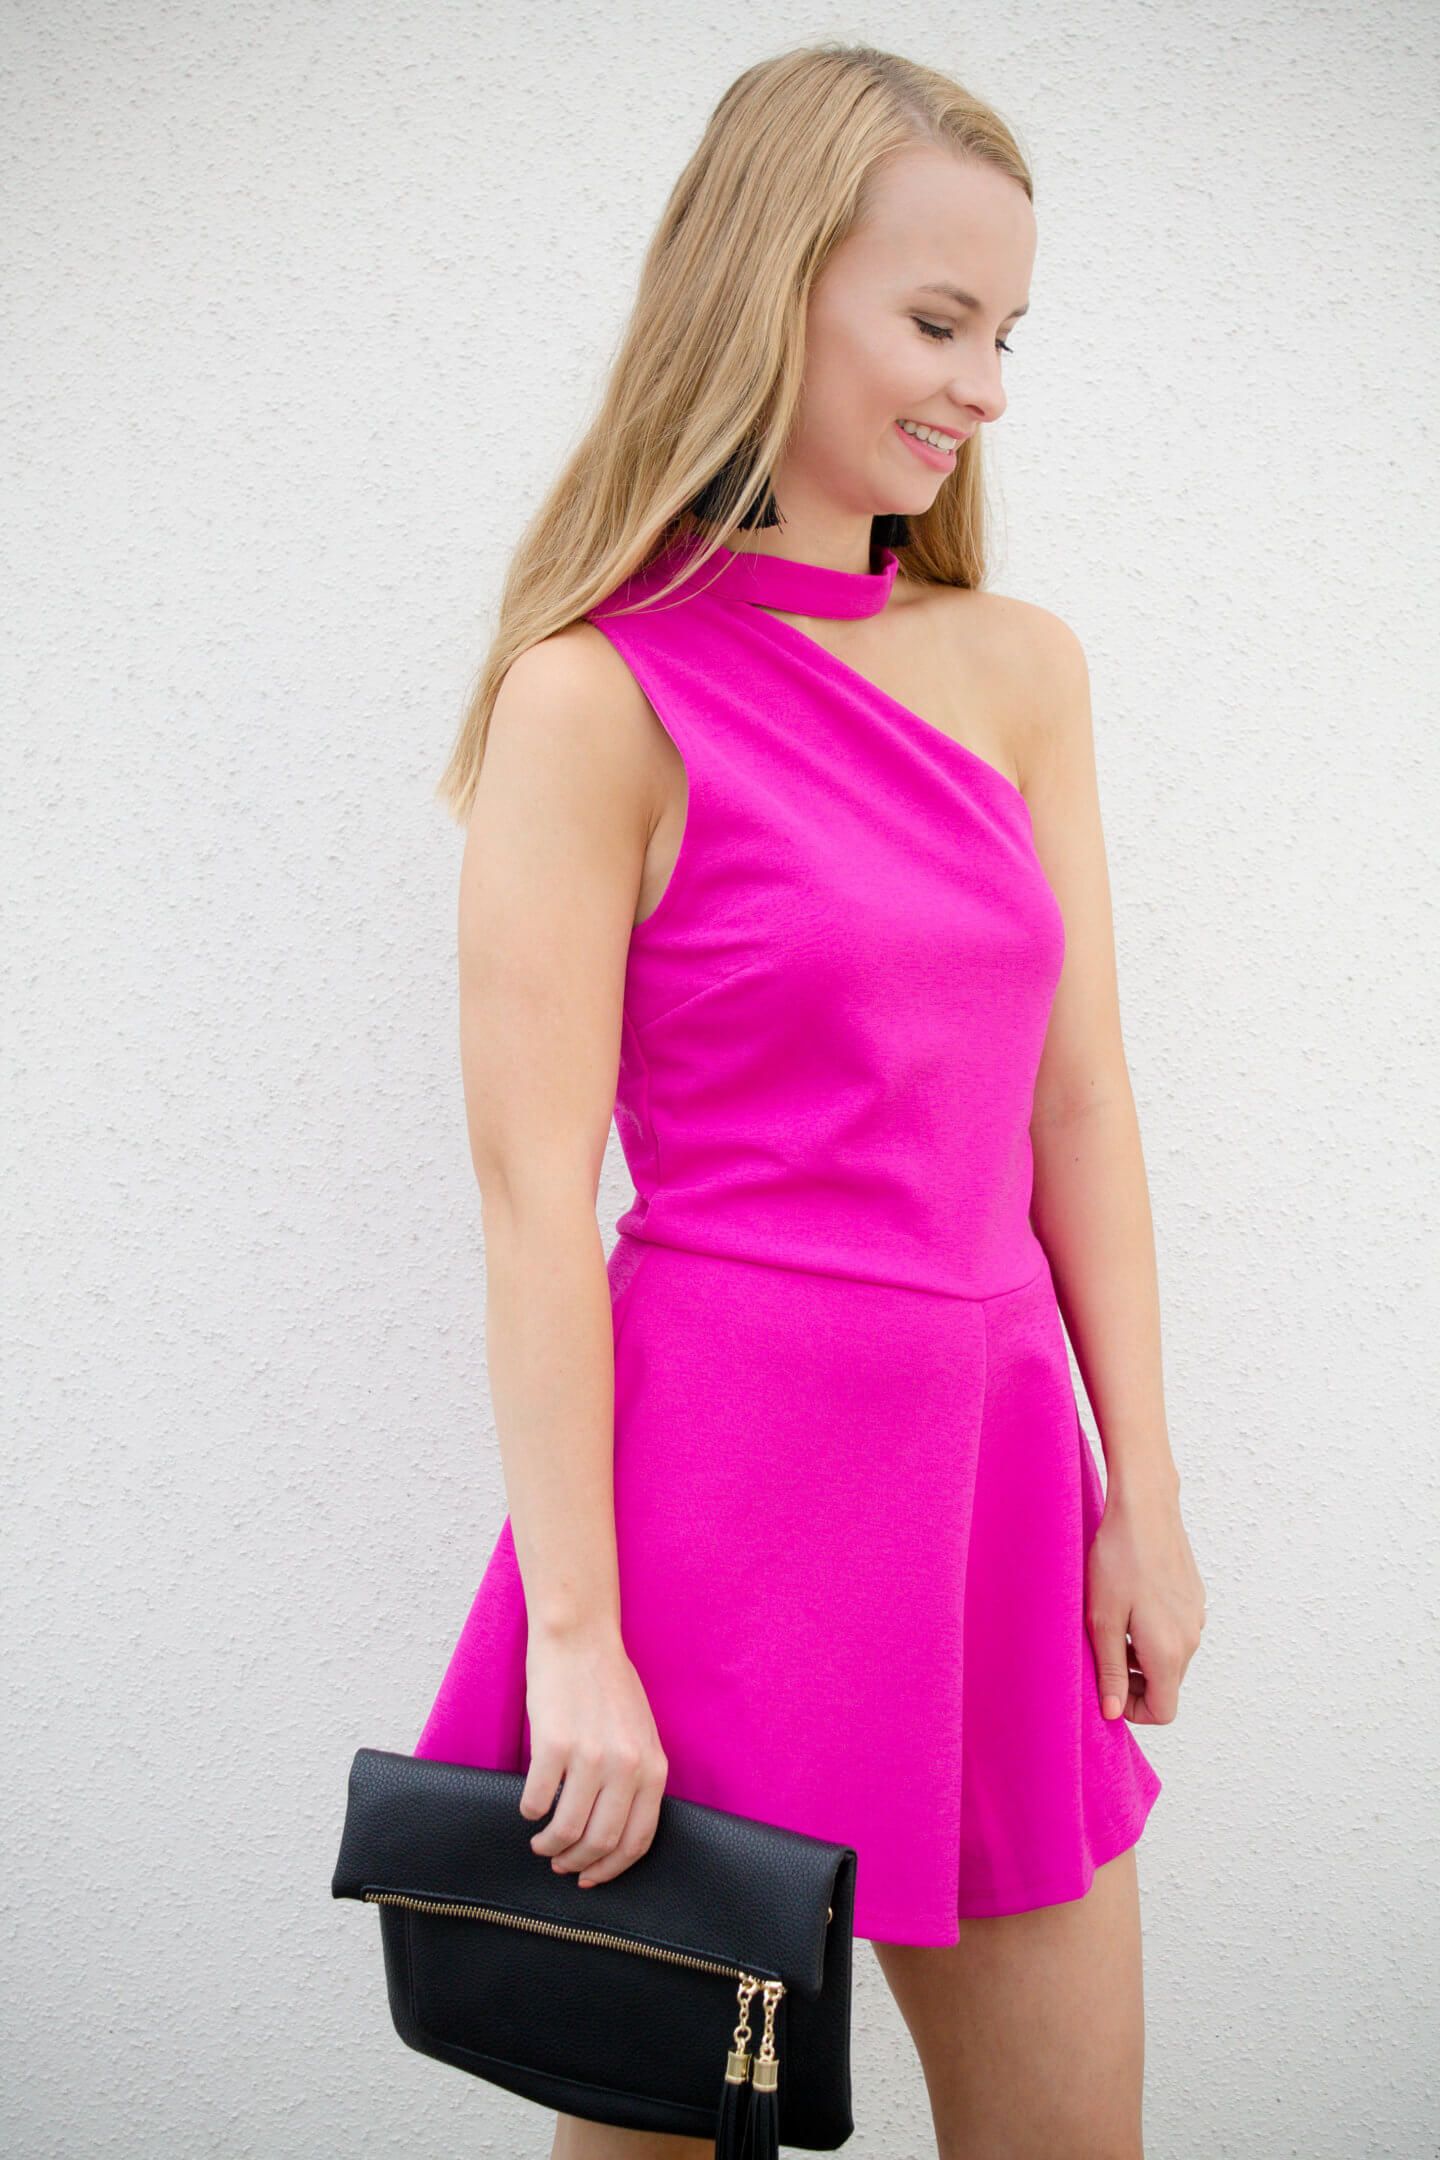 Pink one shoulder romper that is so flattering & would be perfect for a formal wedding. Cashmore Style one shoulder romper under $50. Hot pink affordable romper | The Blonder Life